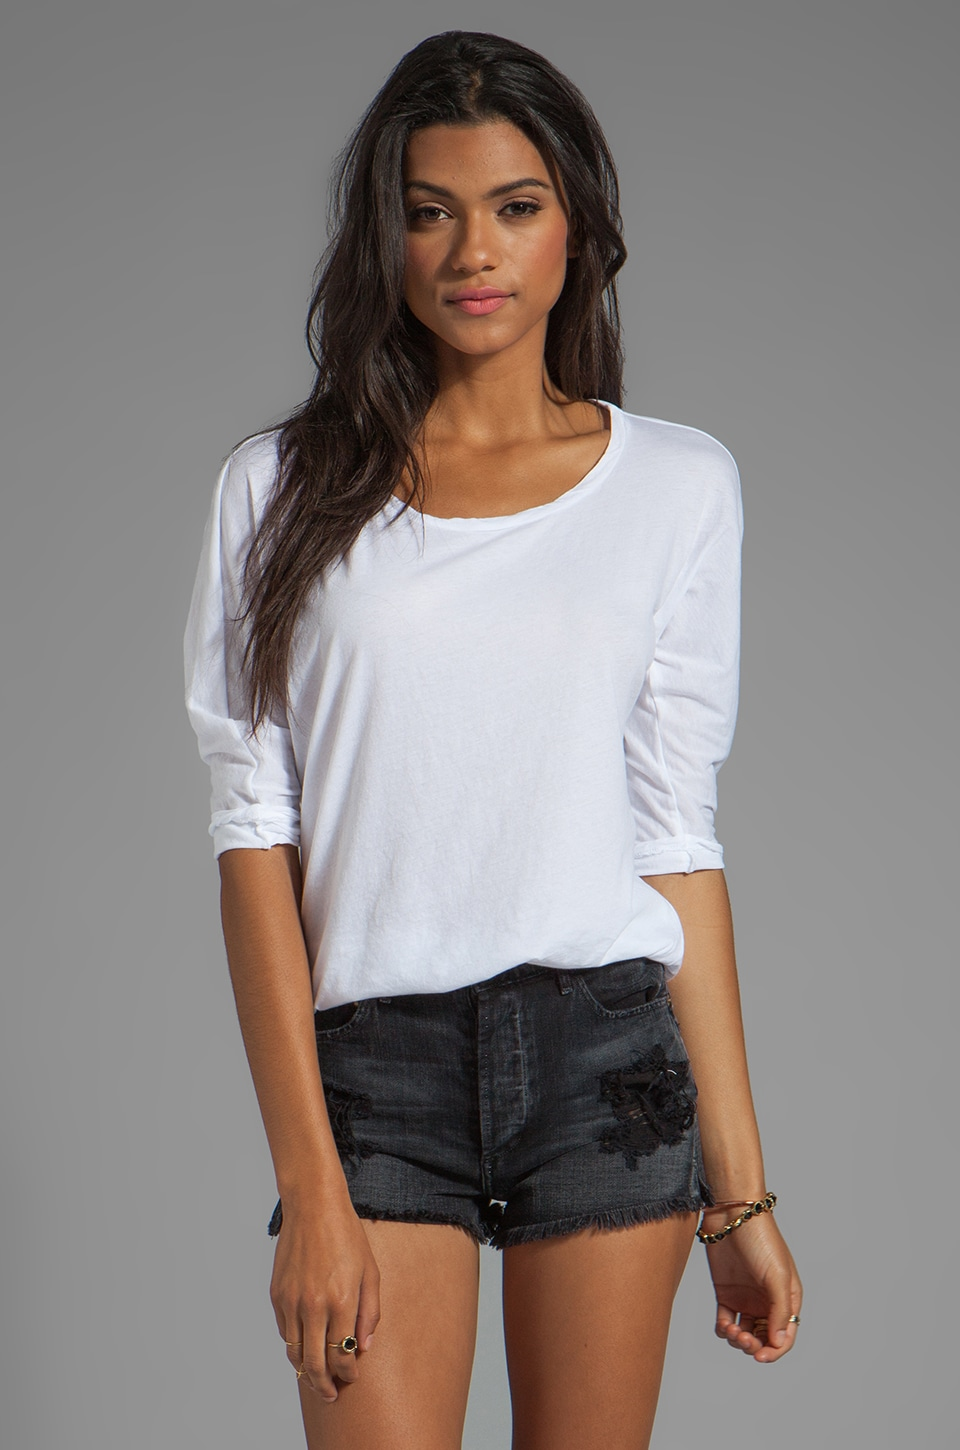 Velvet by Graham & Spencer Meryl Sheer Jersey Top in White